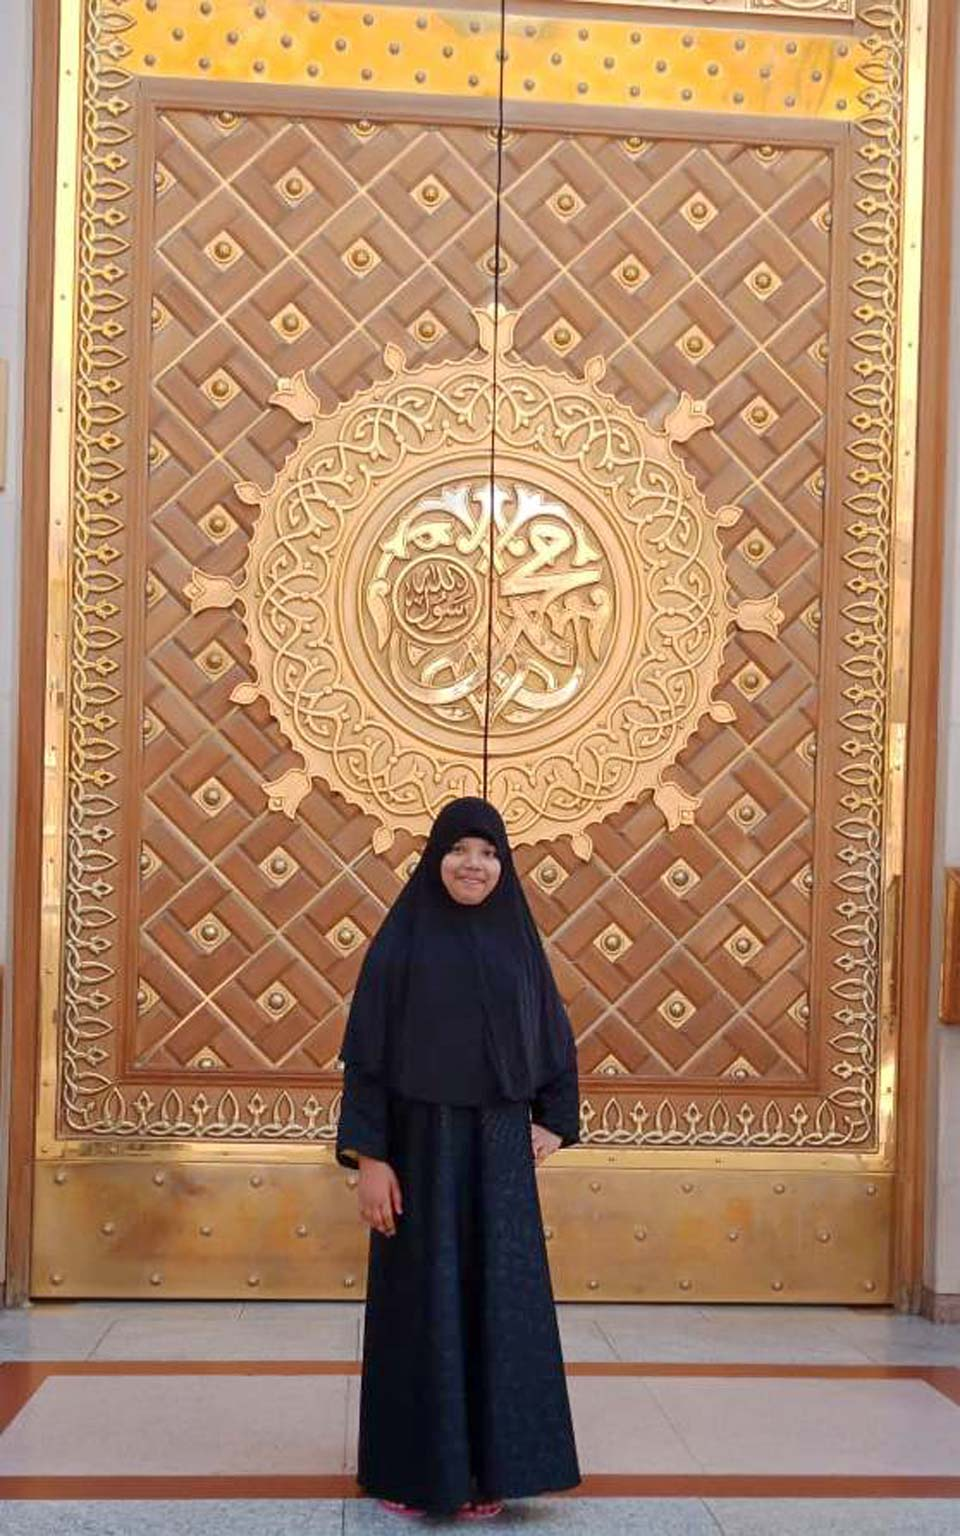 Zoya Imran in front of the entry gate of the Masjid-e-Nabwi